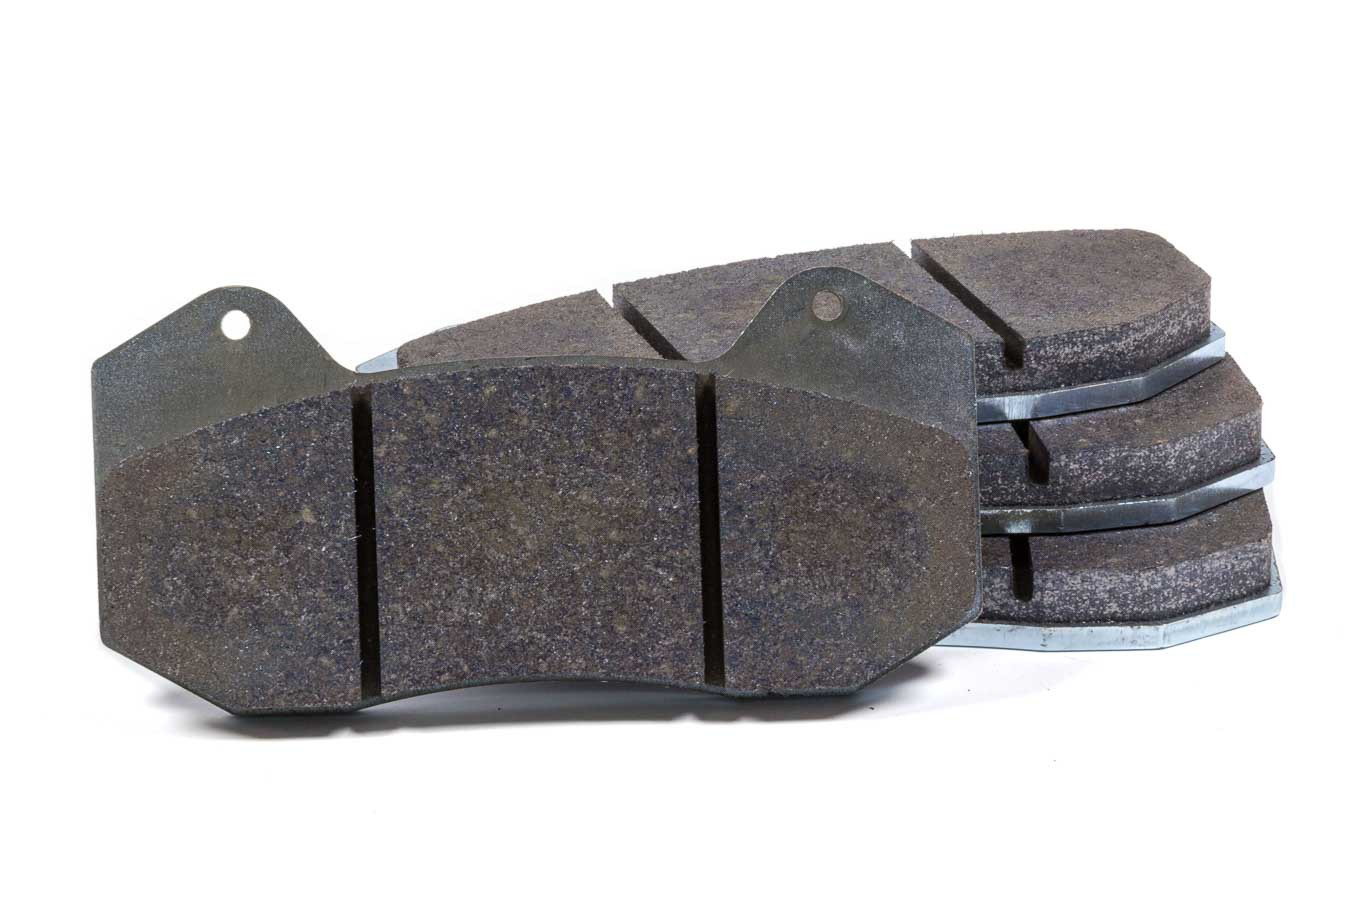 Wilwood 150-14780K Brake Pads, BP-30 Compound, Very High Friction, High Temperature, Dynapro Caliper, Kit